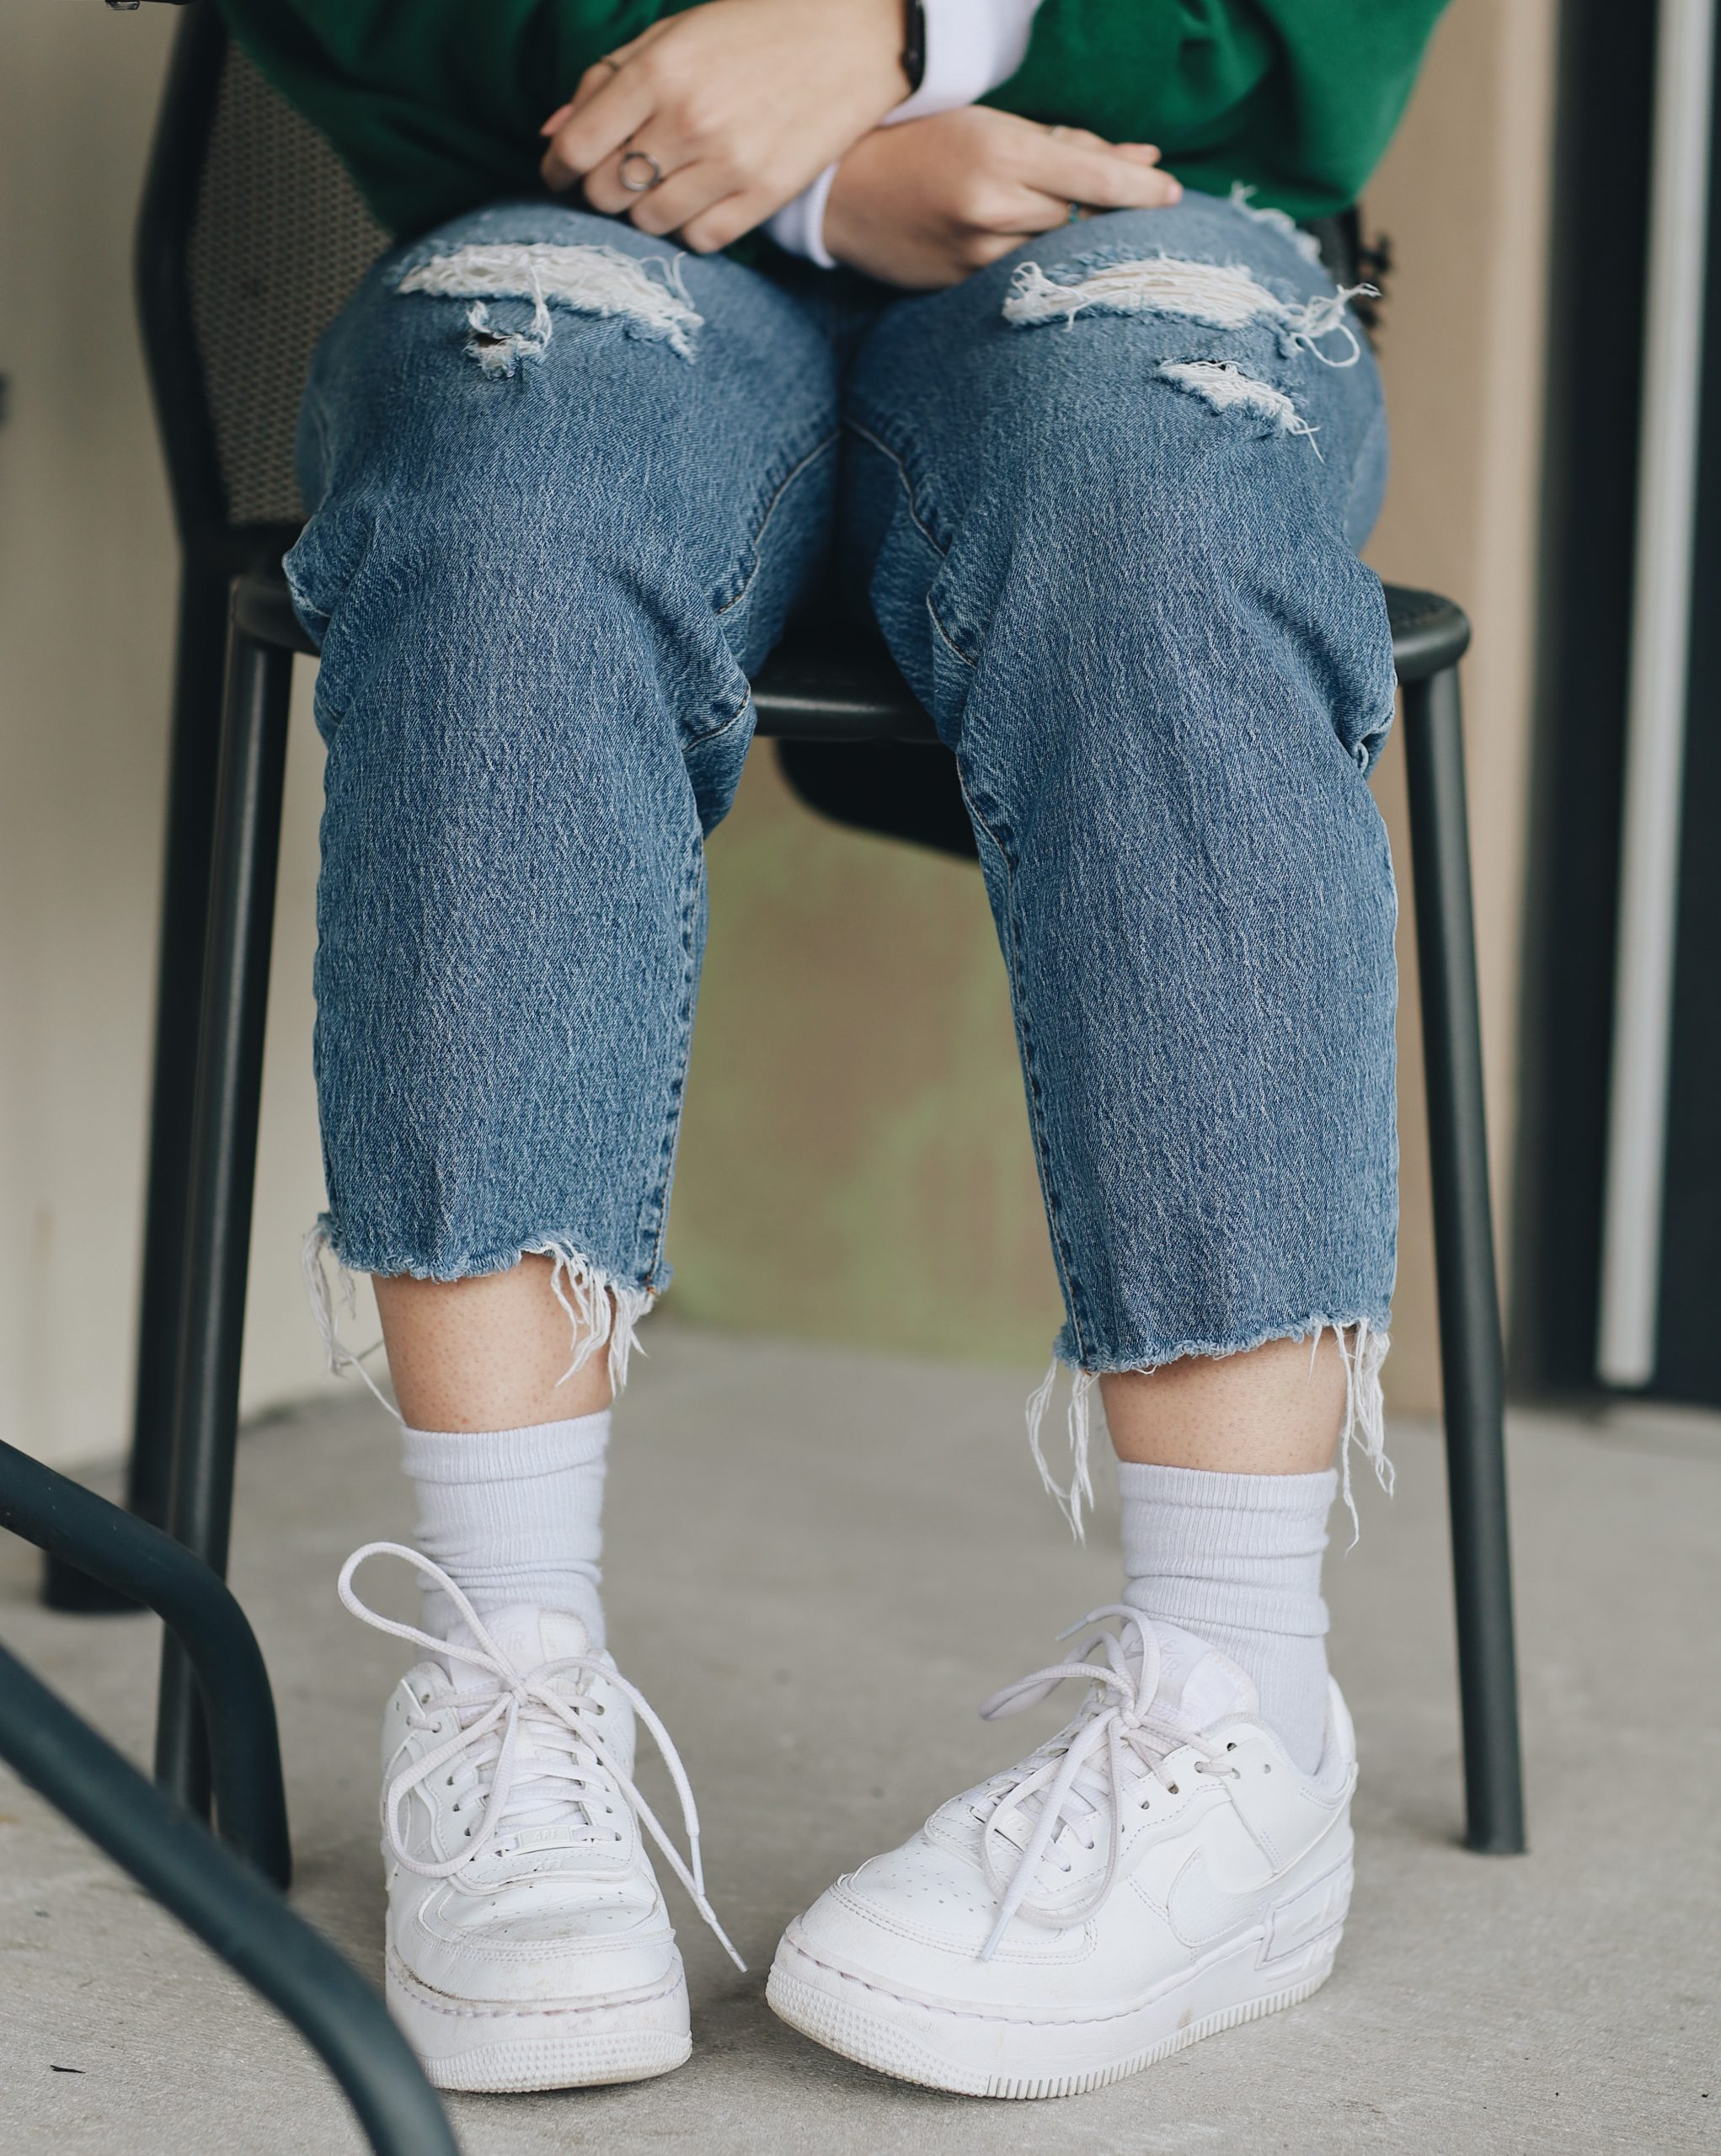 12 Cropped Jeans We're LOVING This Summer